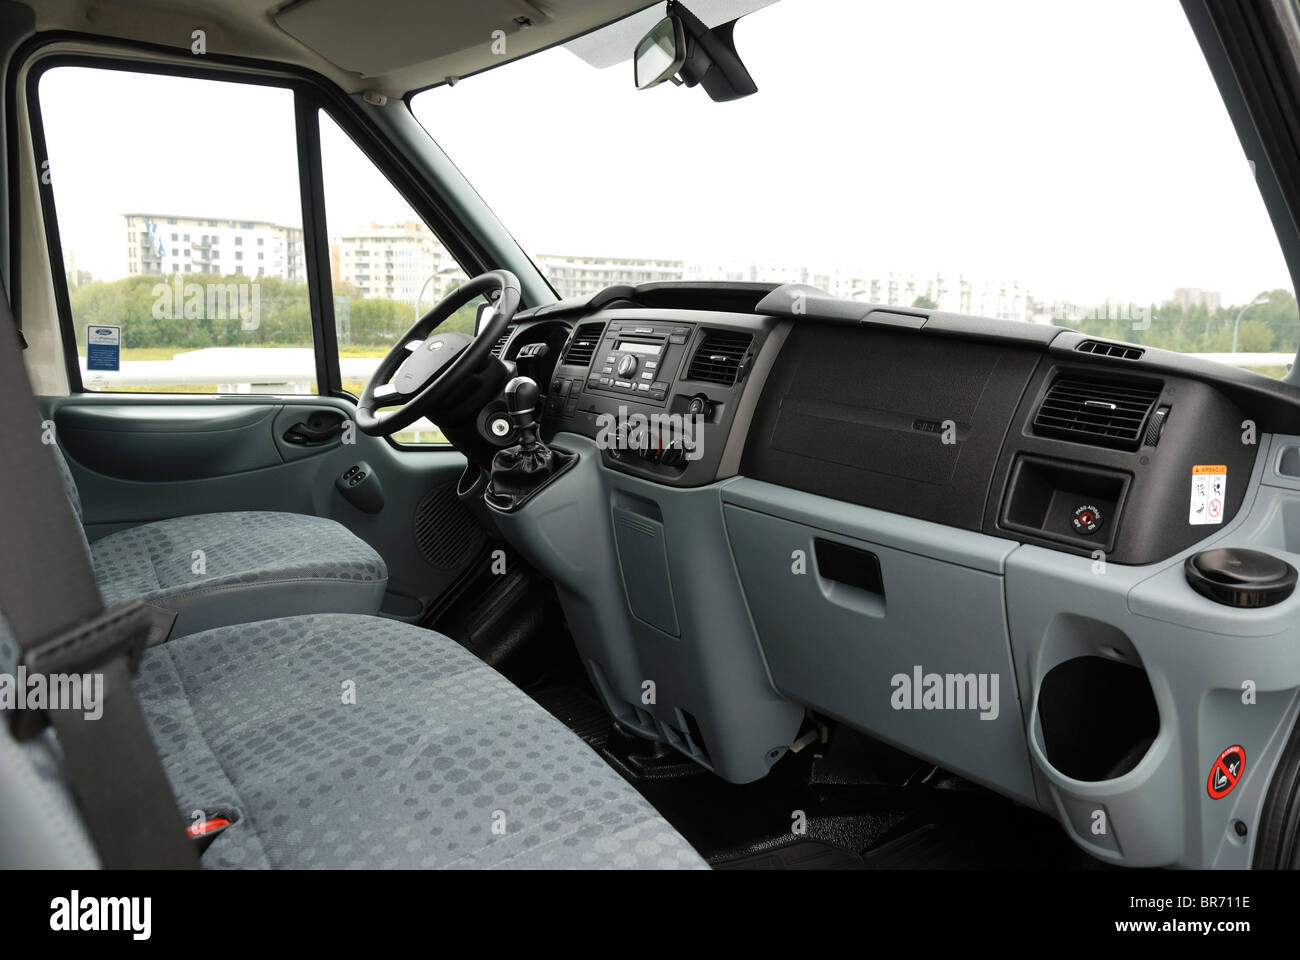 Ford Transit 350 >> Ford Transit 2.4 TDCi AWD 140 T350 Trend panel van - Chill - MWB Stock Photo, Royalty Free Image ...